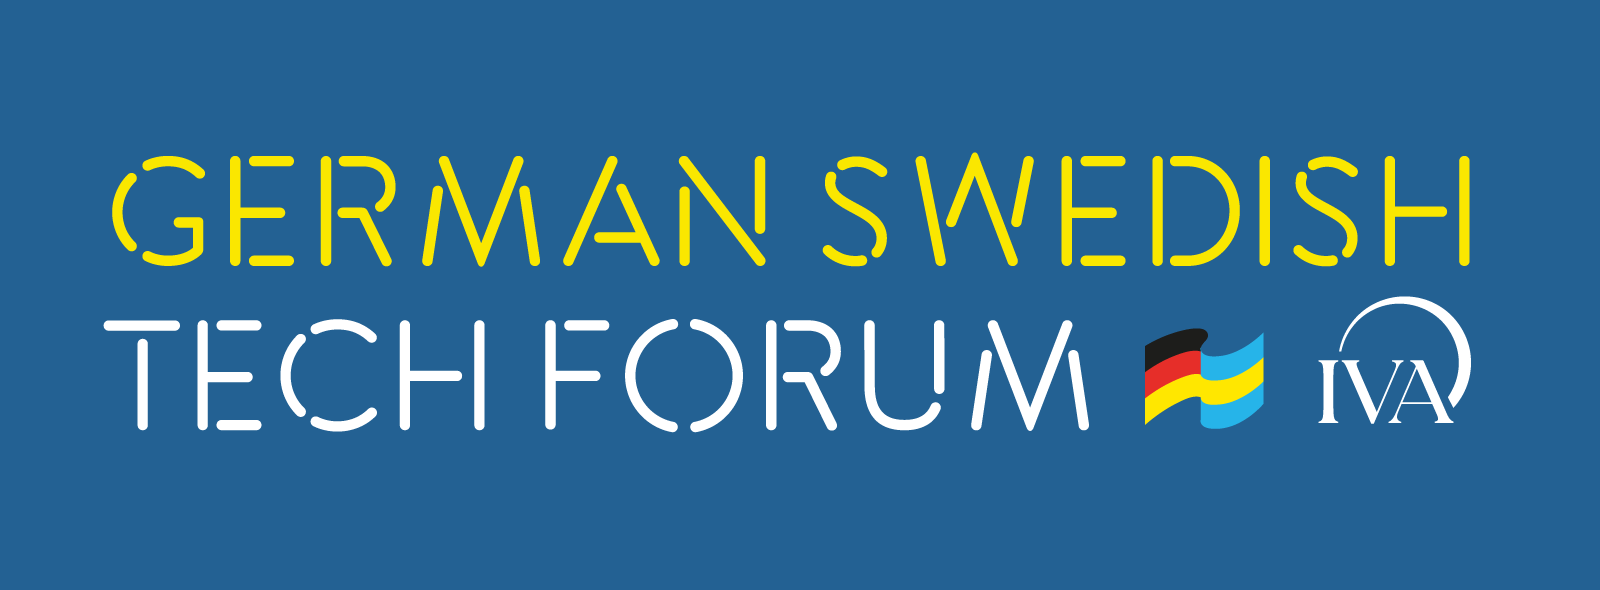 German Swedish Tech Forum